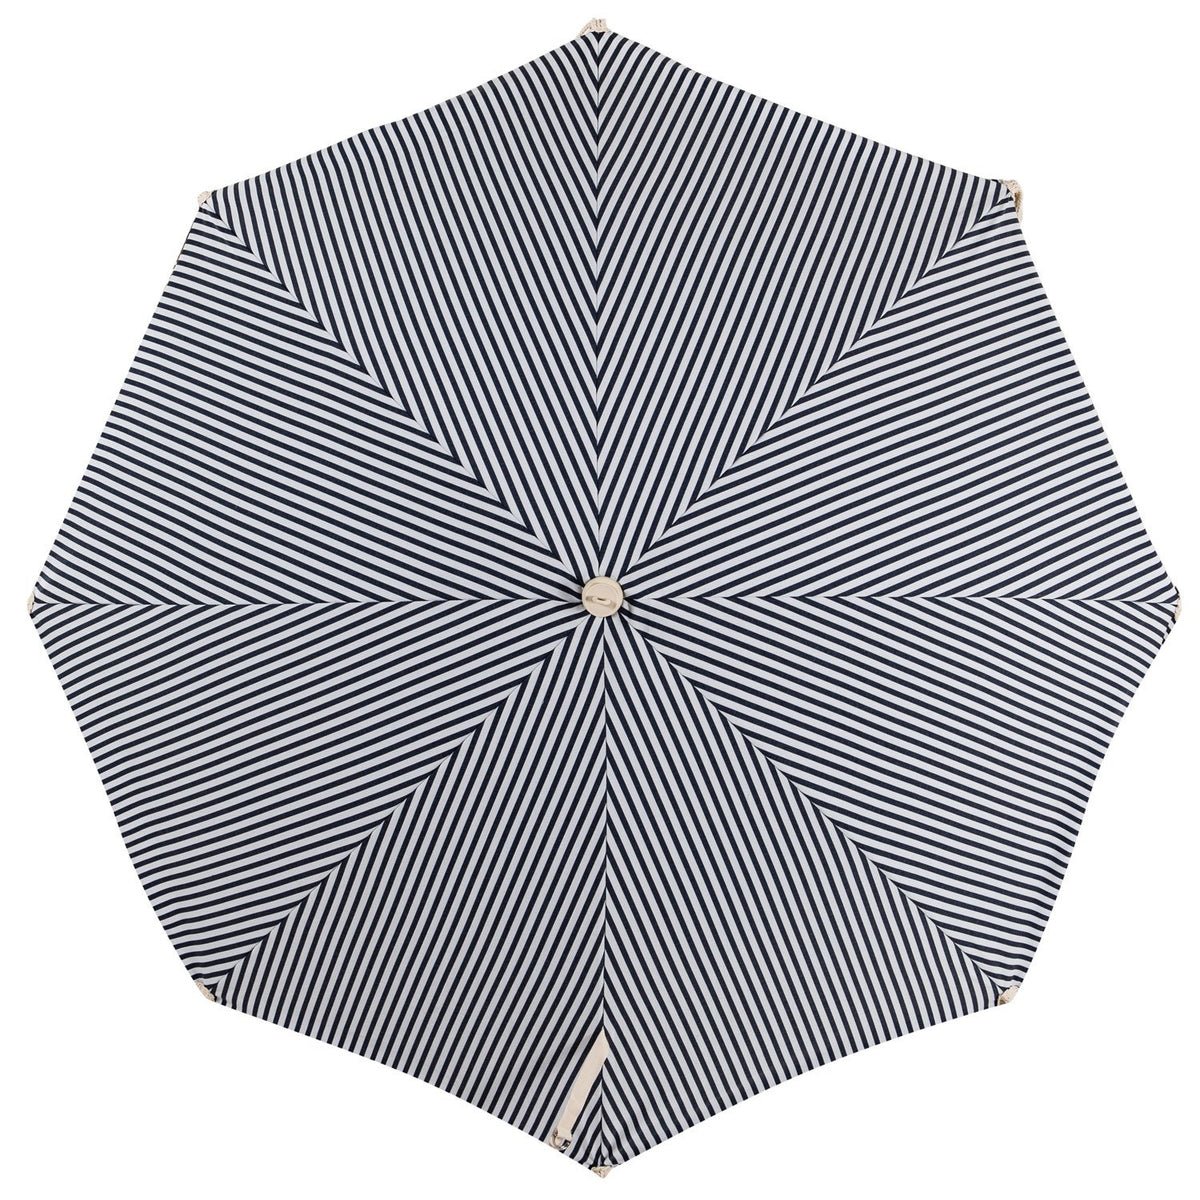 The Premium Beach Umbrella - Lauren's Navy Stripe - Business & Pleasure Co